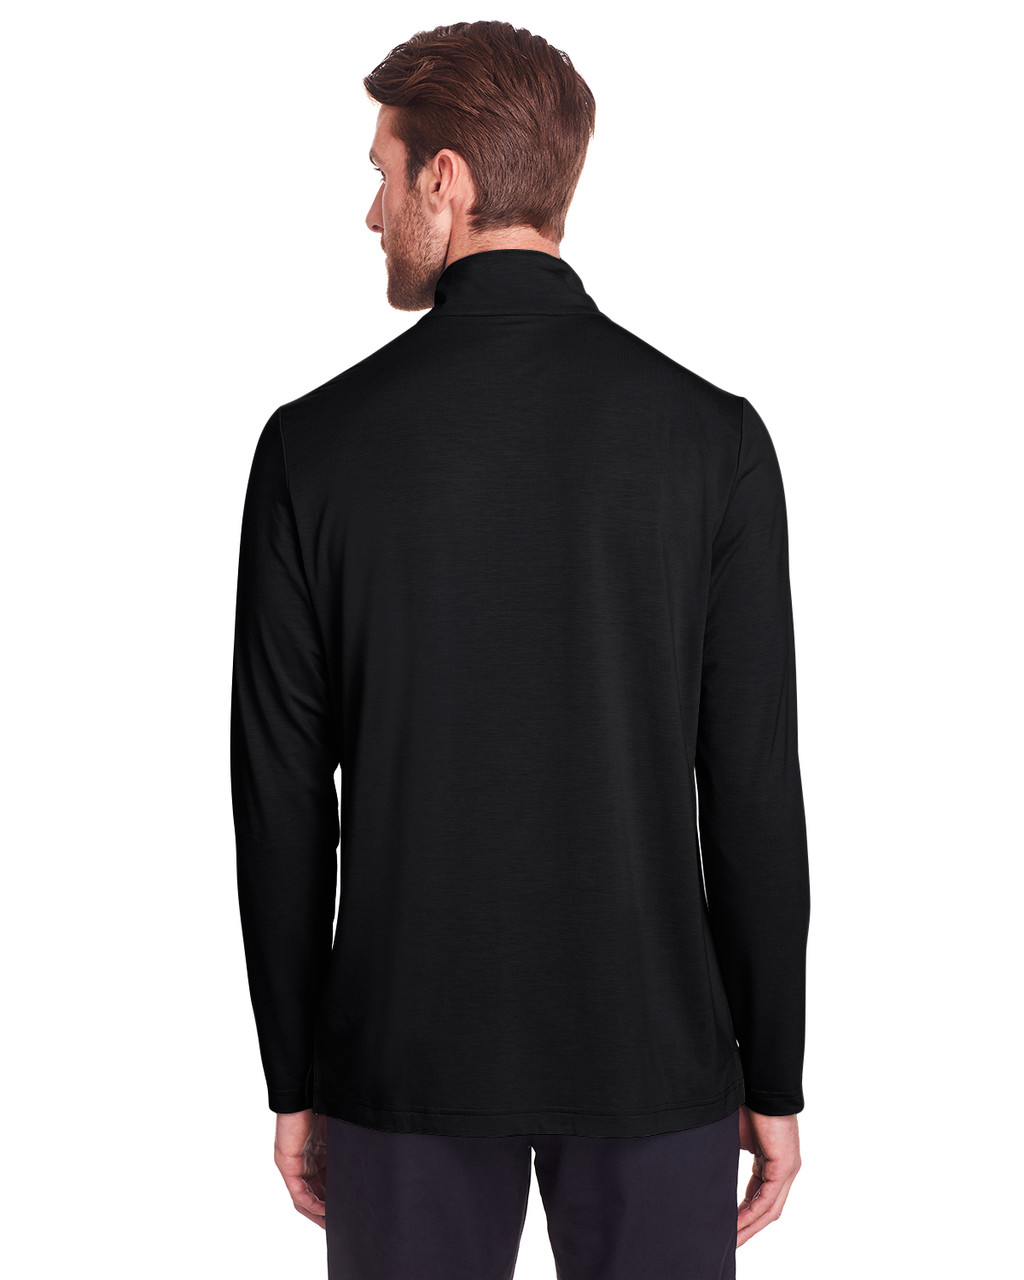 Black - Back,  NE400 North End Men's Jaq Snap-Up Stretch Performance Pullover Long Sleeve Shirt | BlankClothing.ca